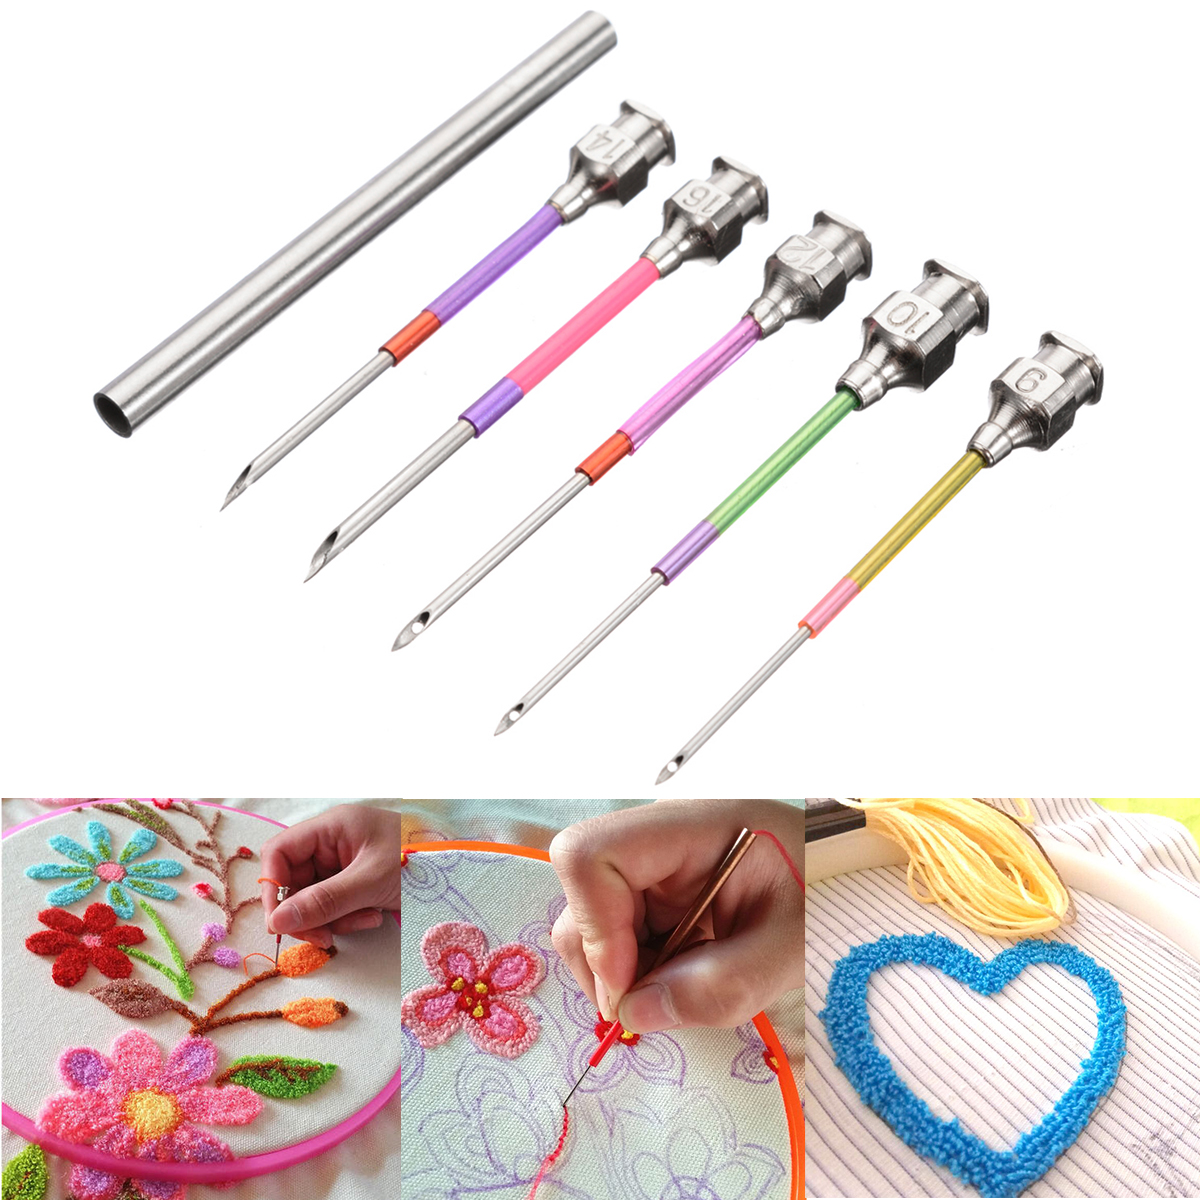 5pcs Embroidery Punch Needle Handmade Needlepoint Kit Diy Sewing Tools Sewing